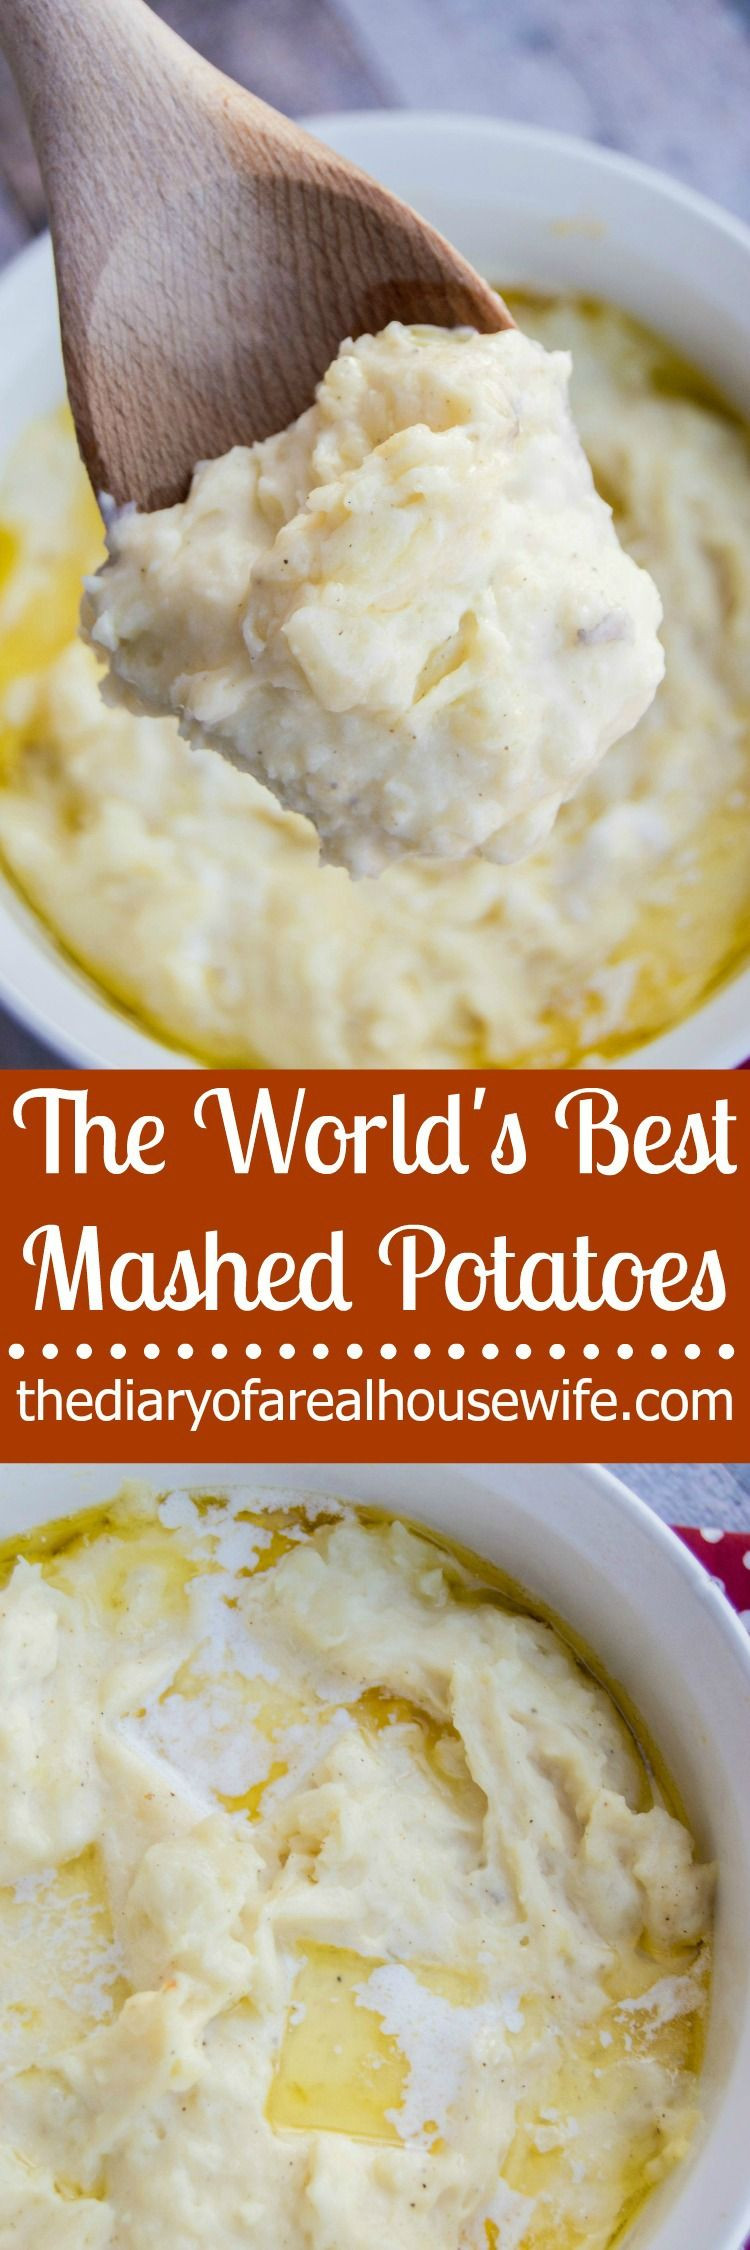 Best Mashed Potatoes For Thanksgiving  If you need a good recipe for Thanksgiving you will want